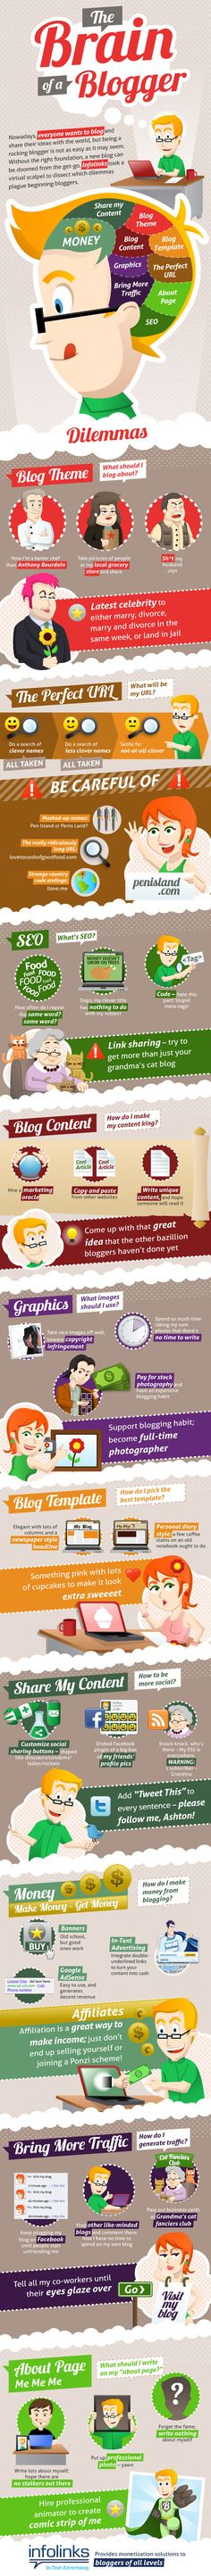 El cerebro de un bloguero | Infolinks Blogger Brain Infographic on ProBlogger « Infografías de Marketing